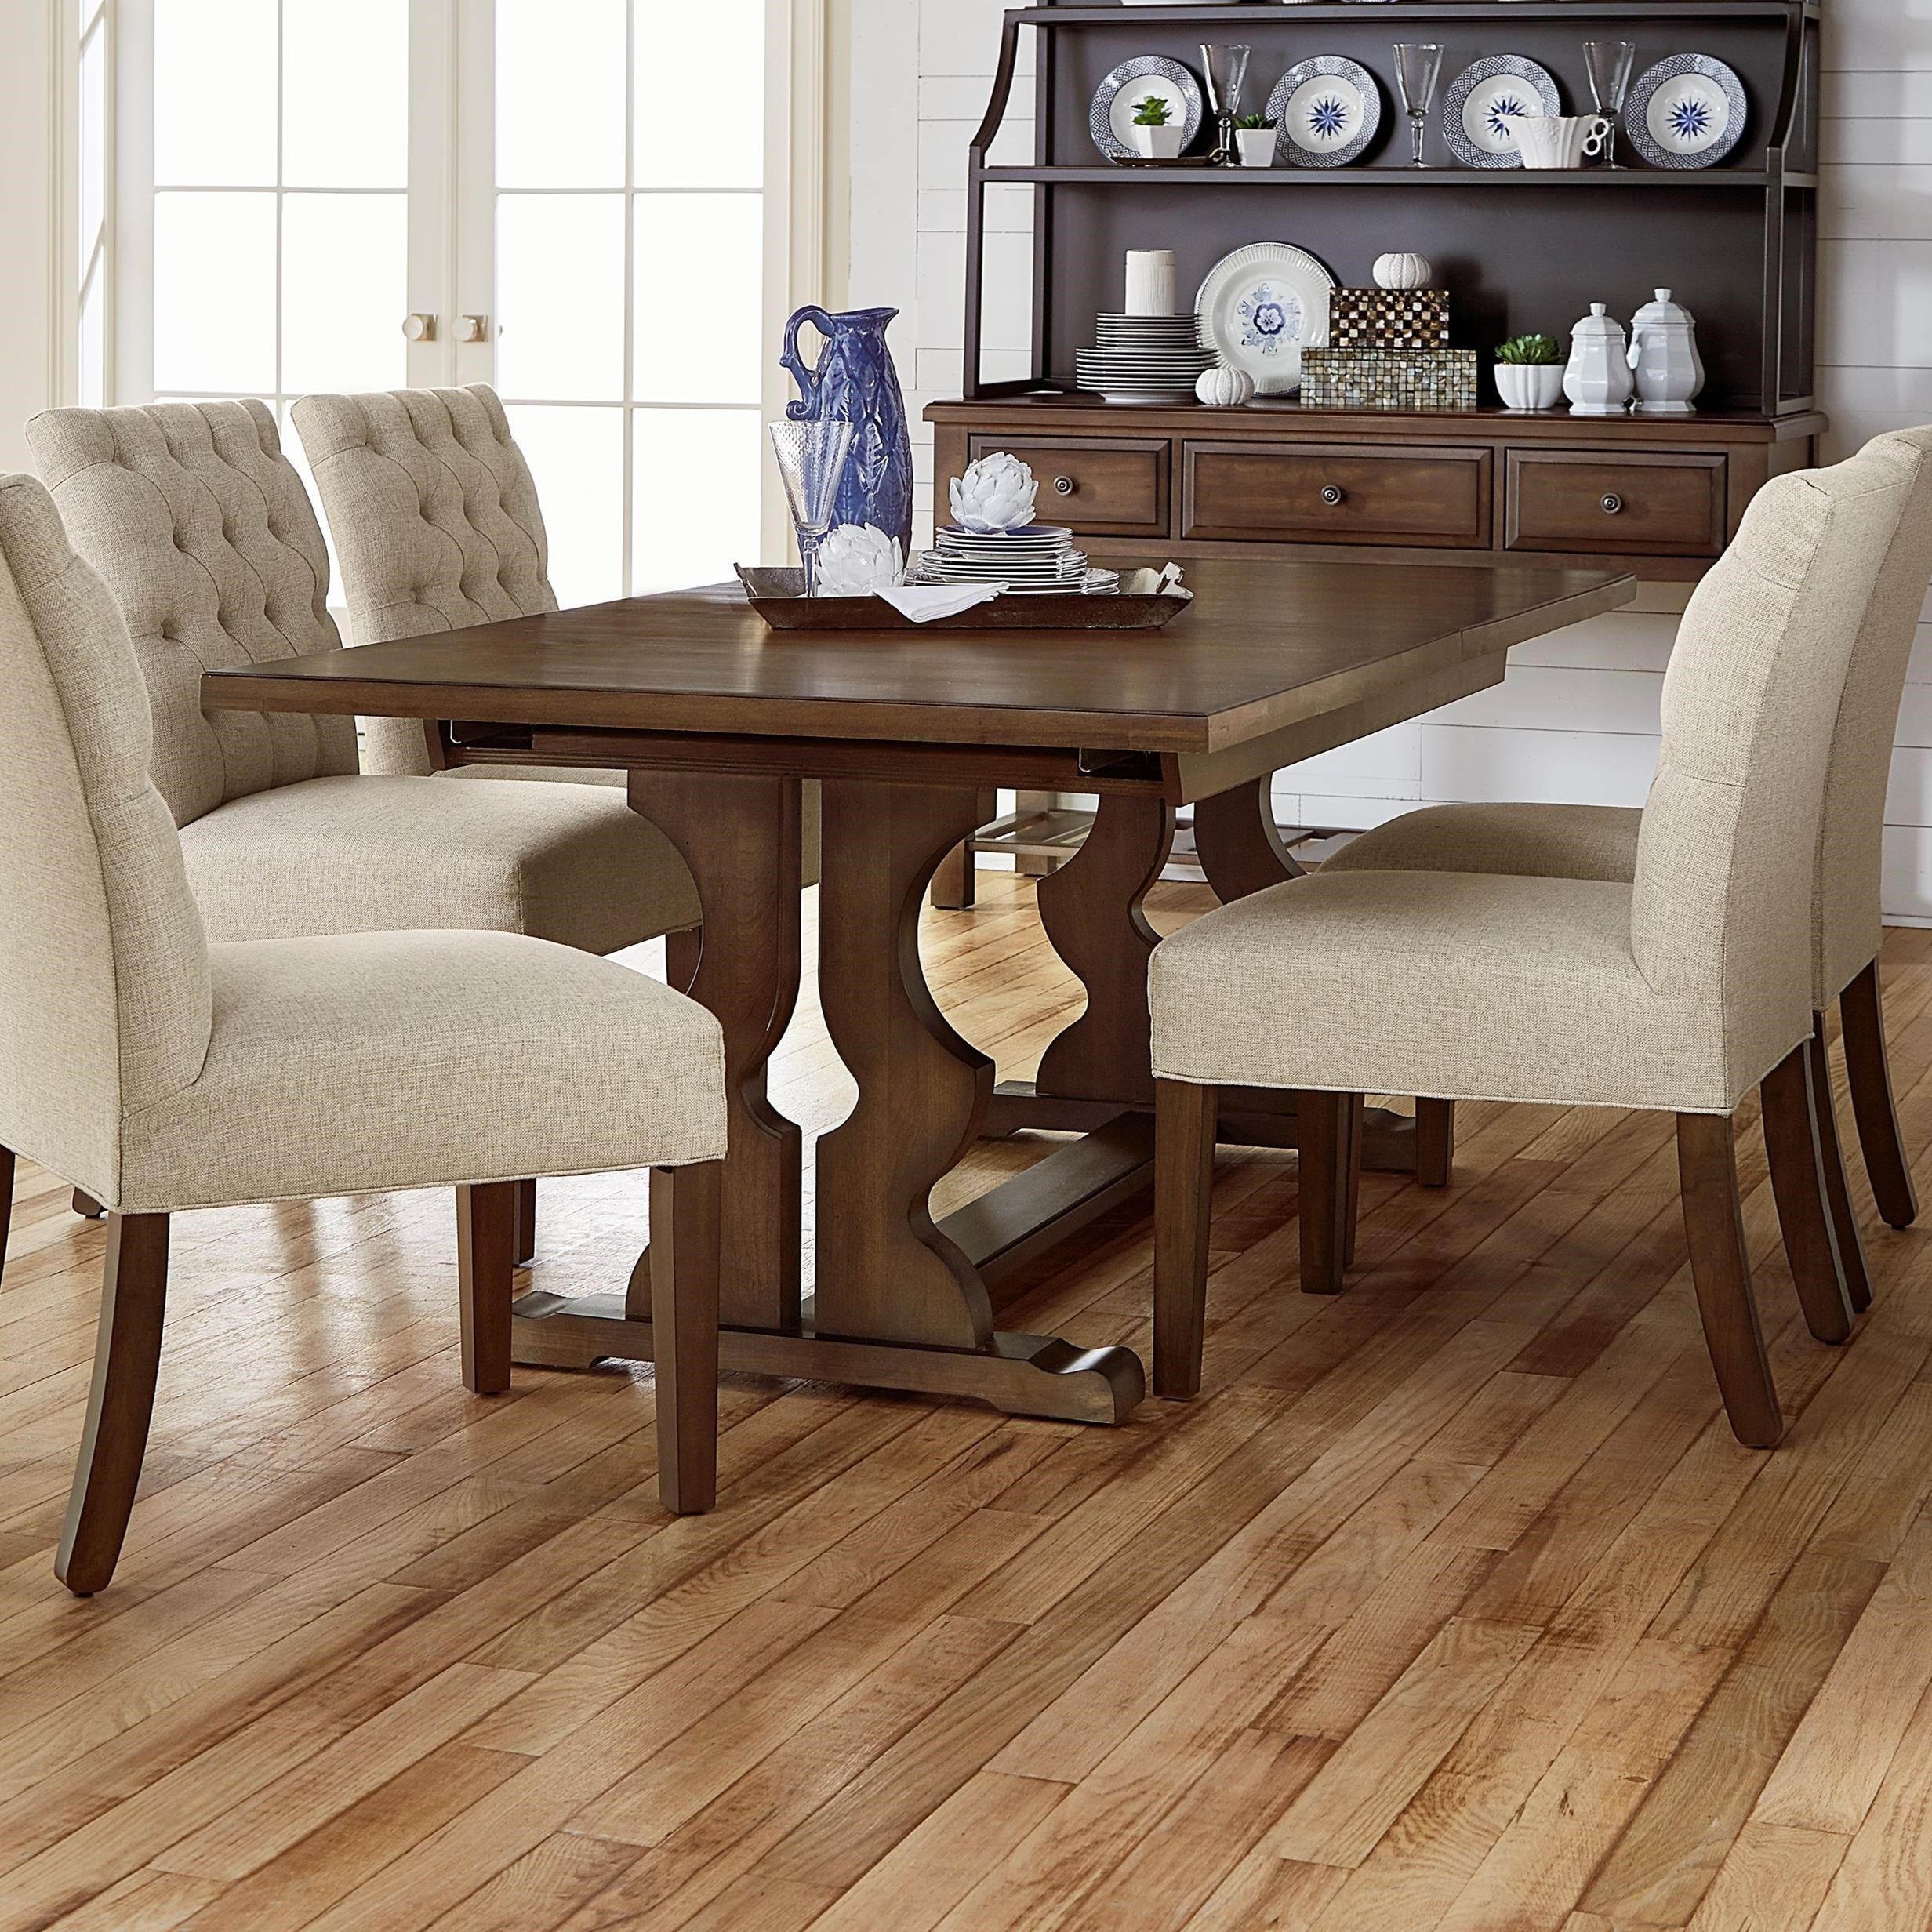 Artisan U0026 Post Simply Dining 7 Piece Solid Cherry Trestle Table Set    Hudsonu0027s Furniture   Dining 7 (or More) Piece Sets